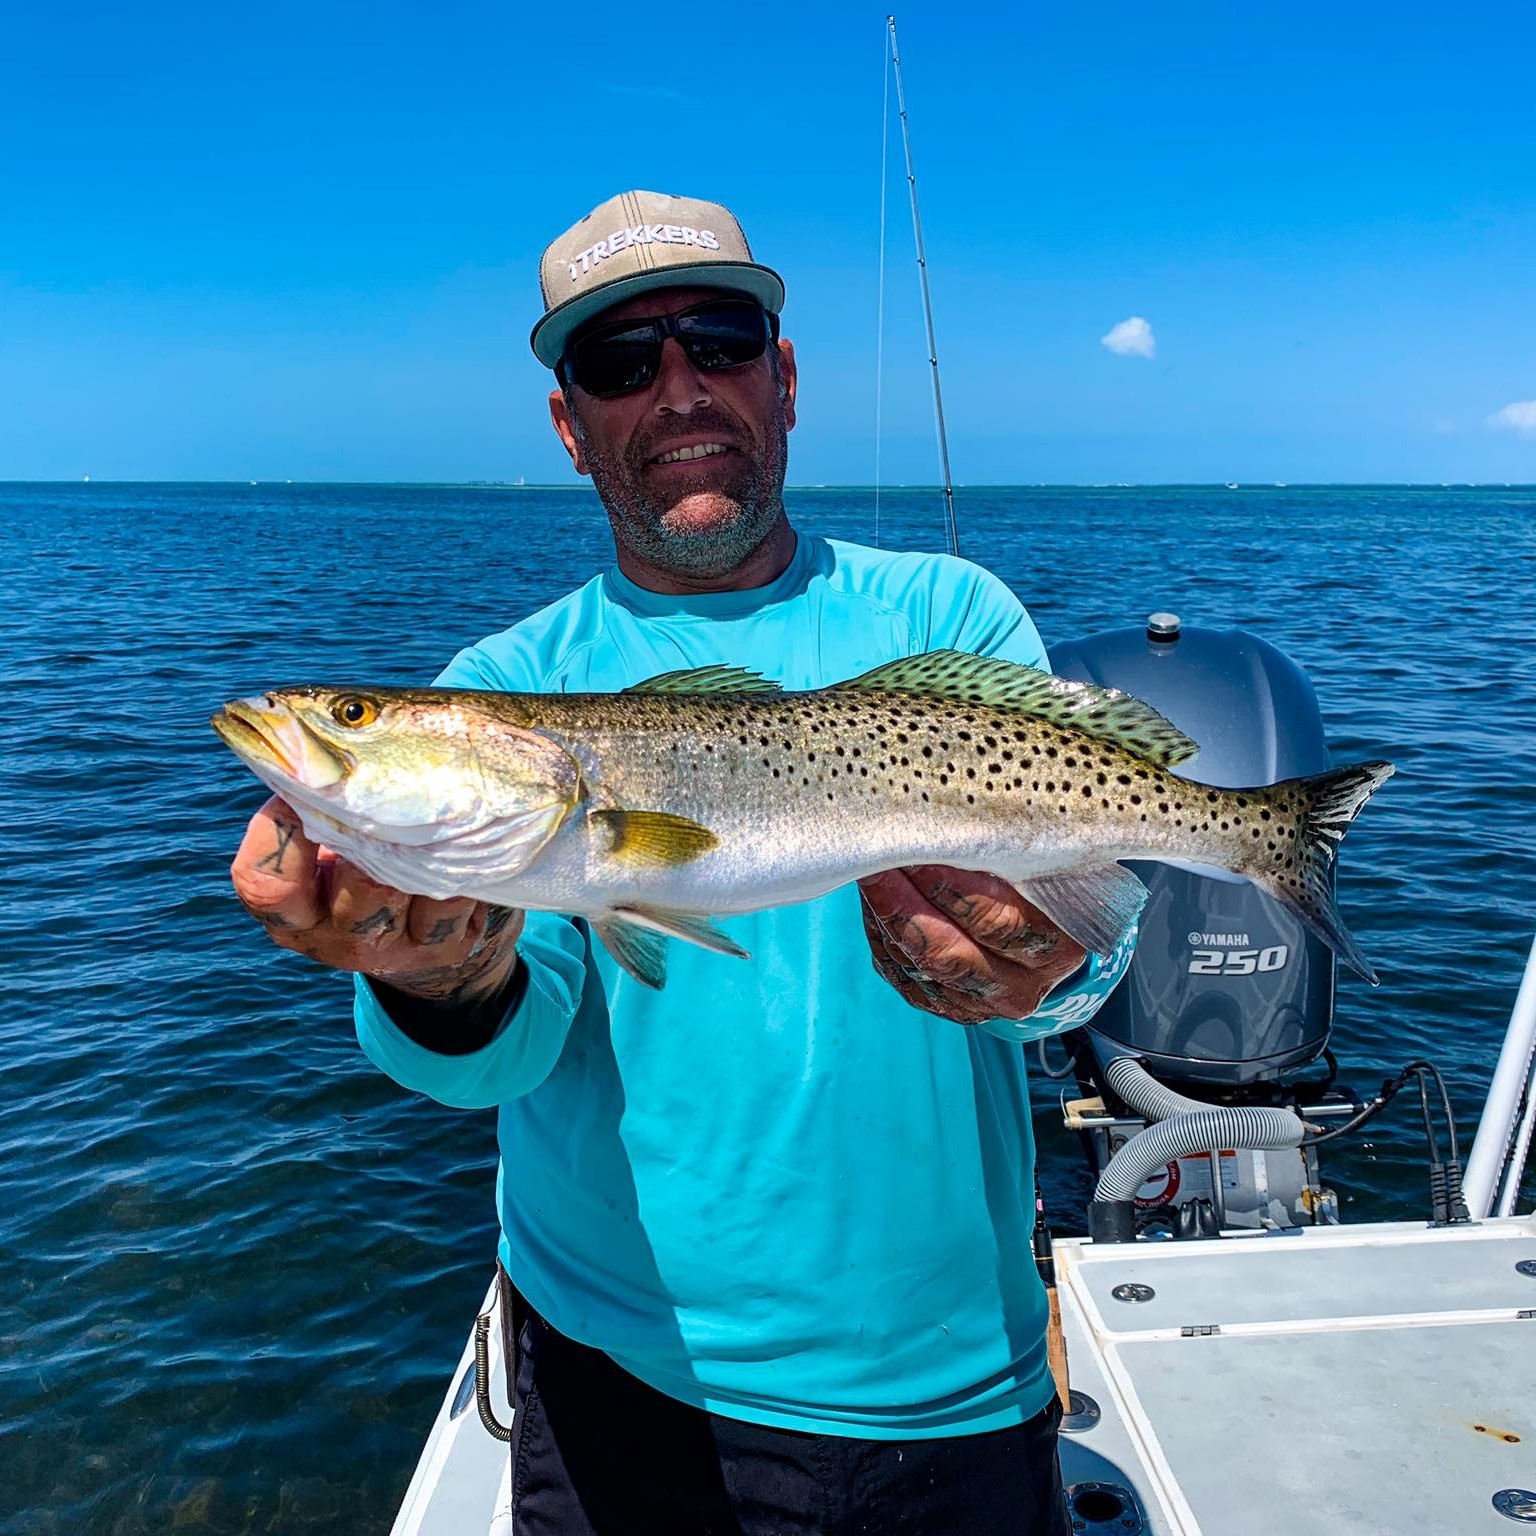 a picture of Anna Maria Island Fishing Charters with Captain Nate